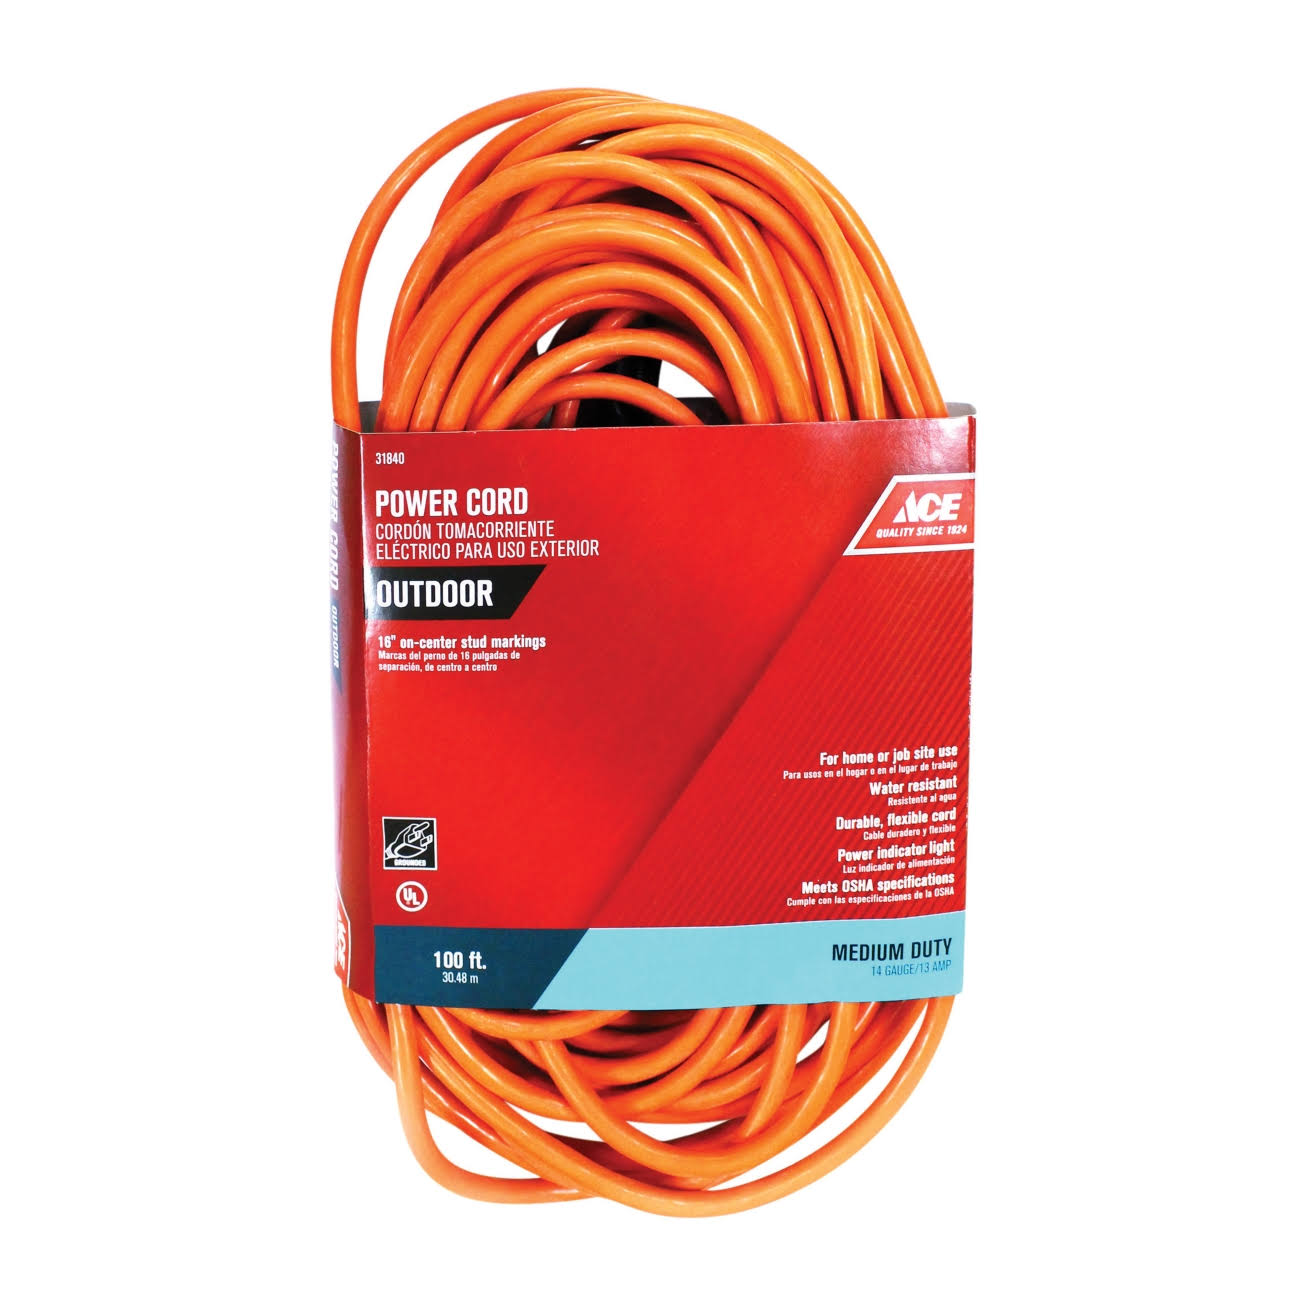 ACE Outdoor Power Cord - Orange, 100'